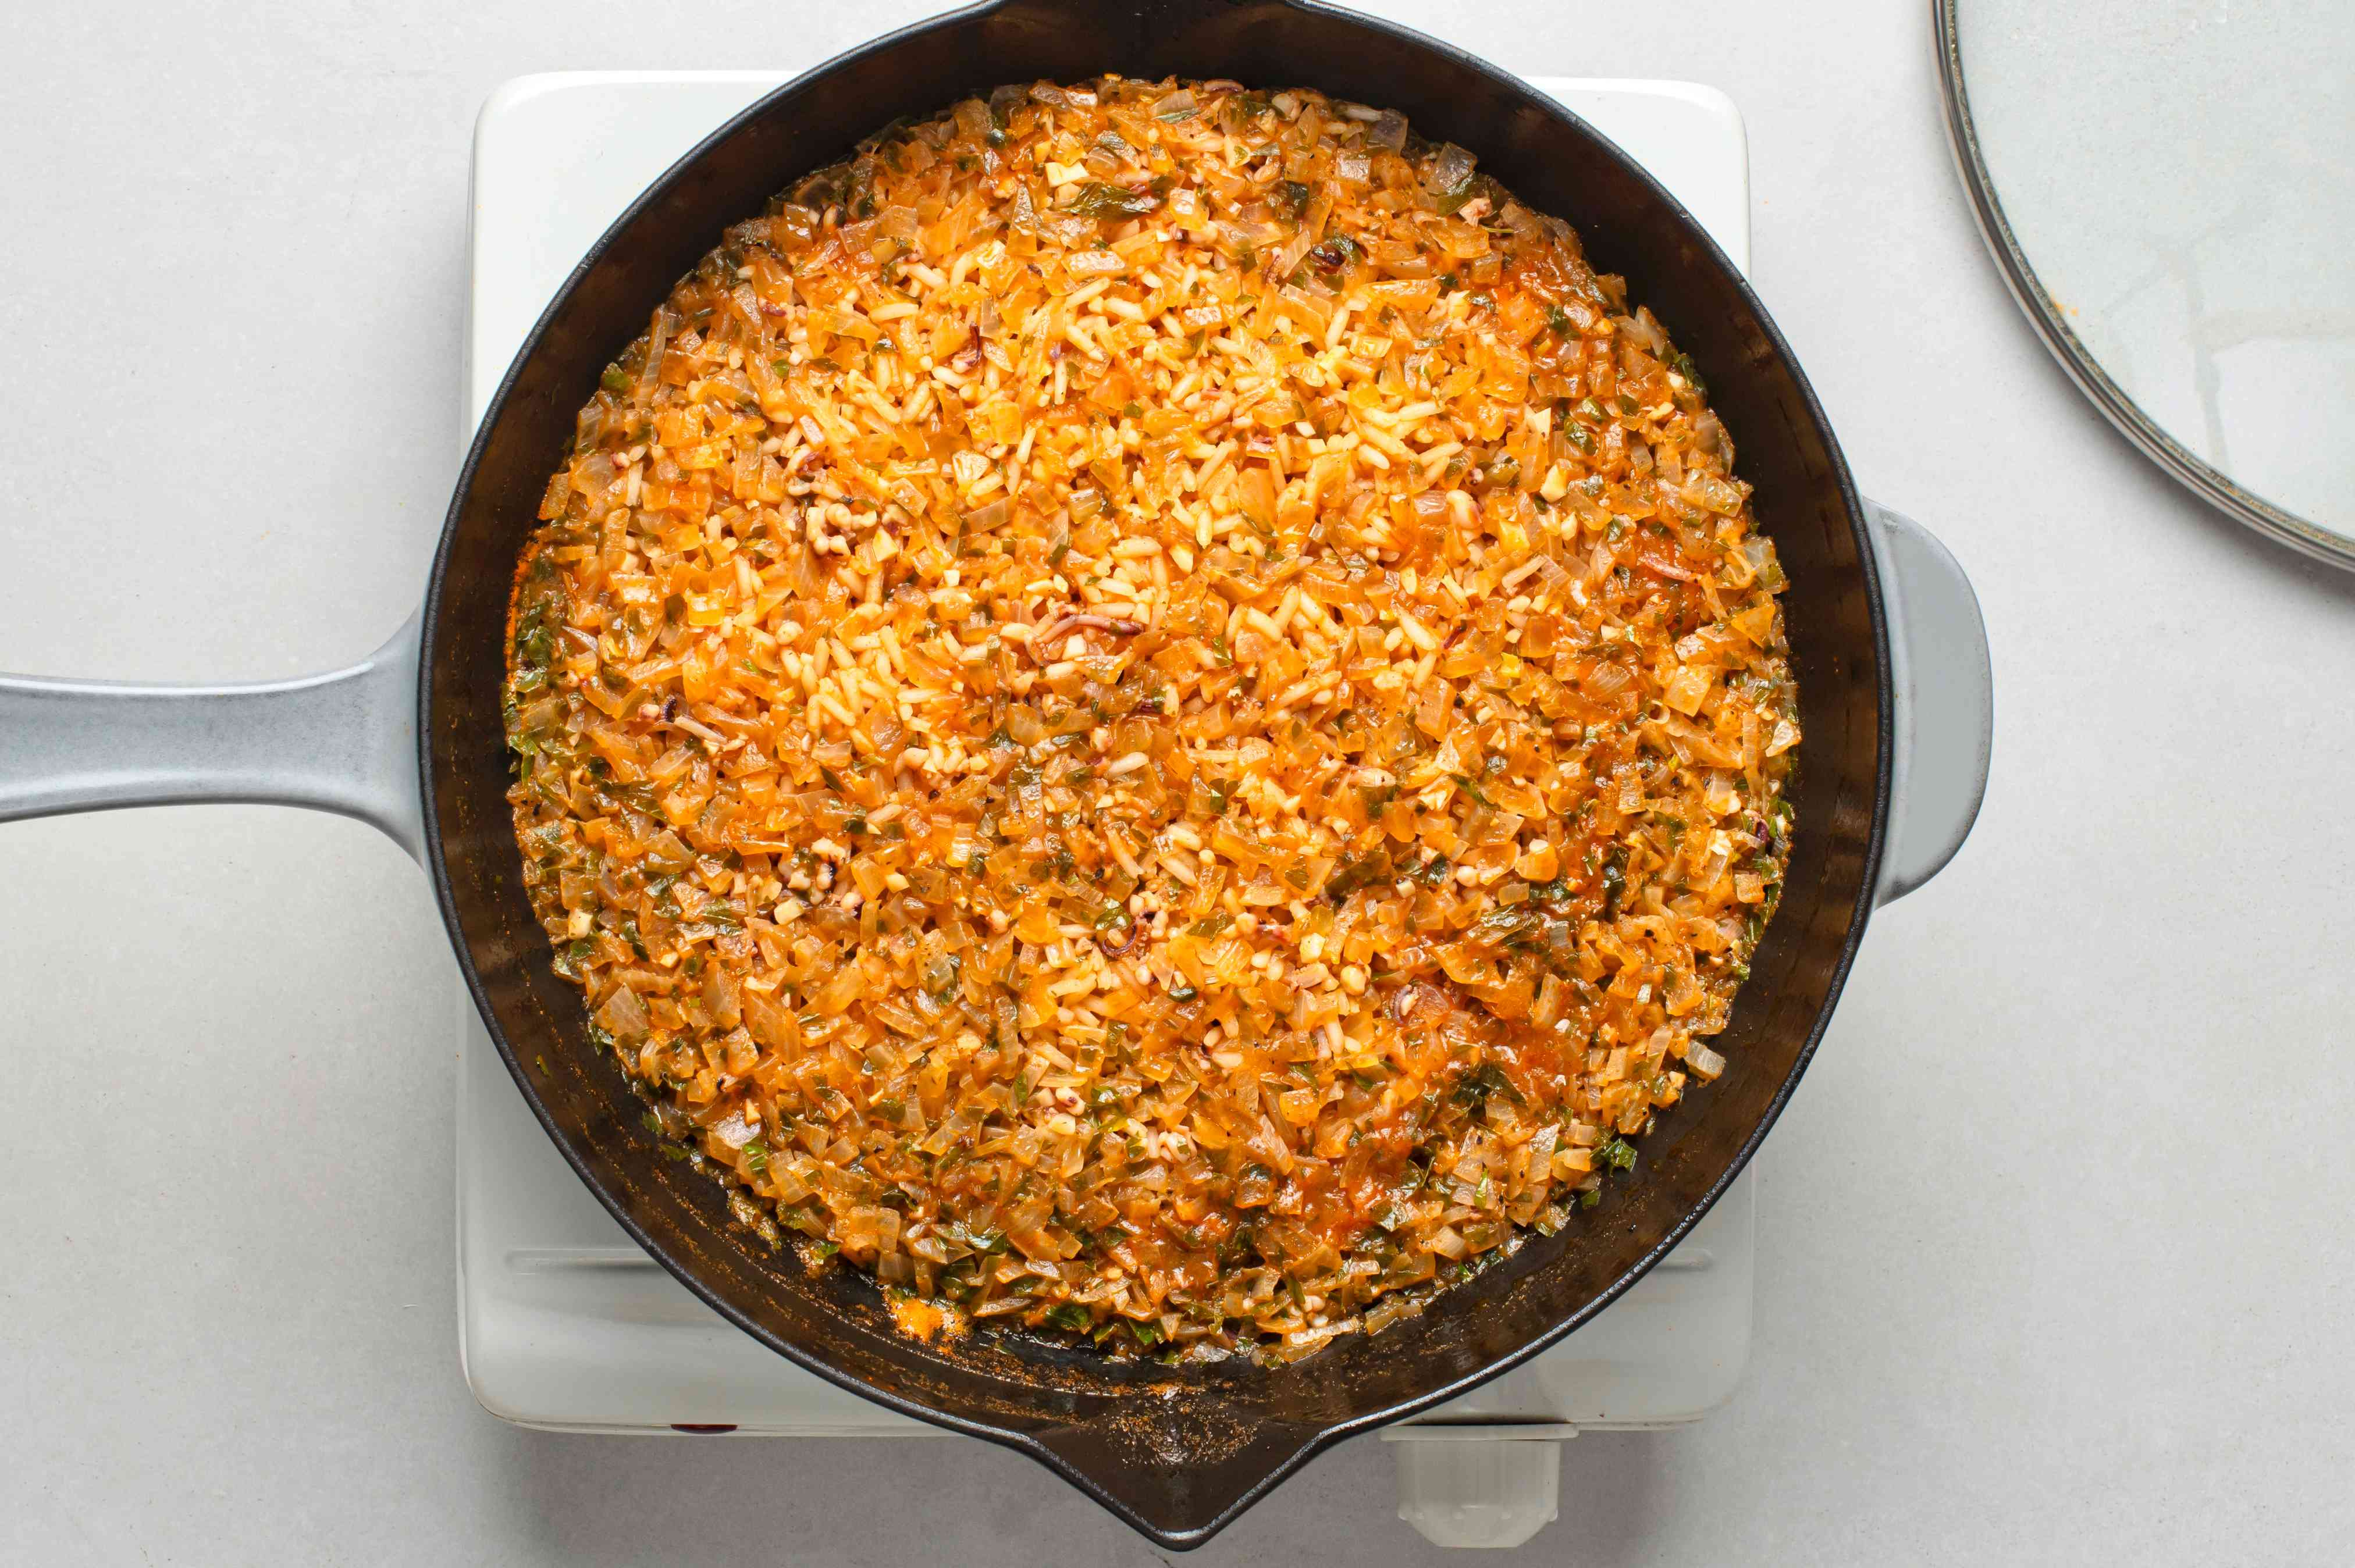 A pan of cooked rice in tomato mixture